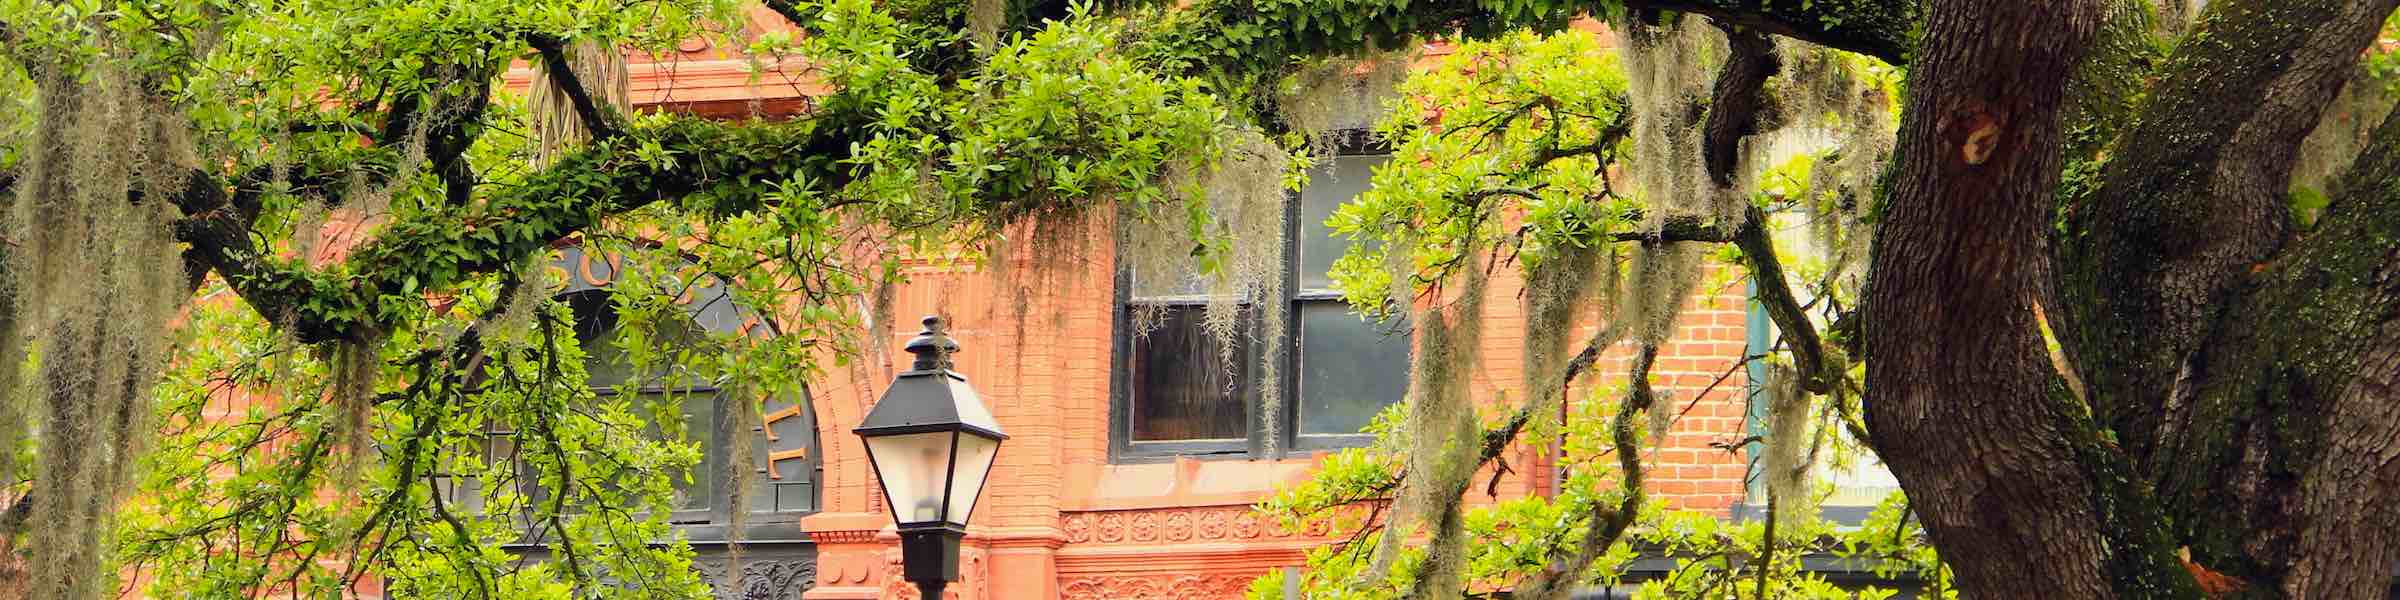 Mossy trees and the old Cotton Exchange as seen from Bay Street, Savannah.